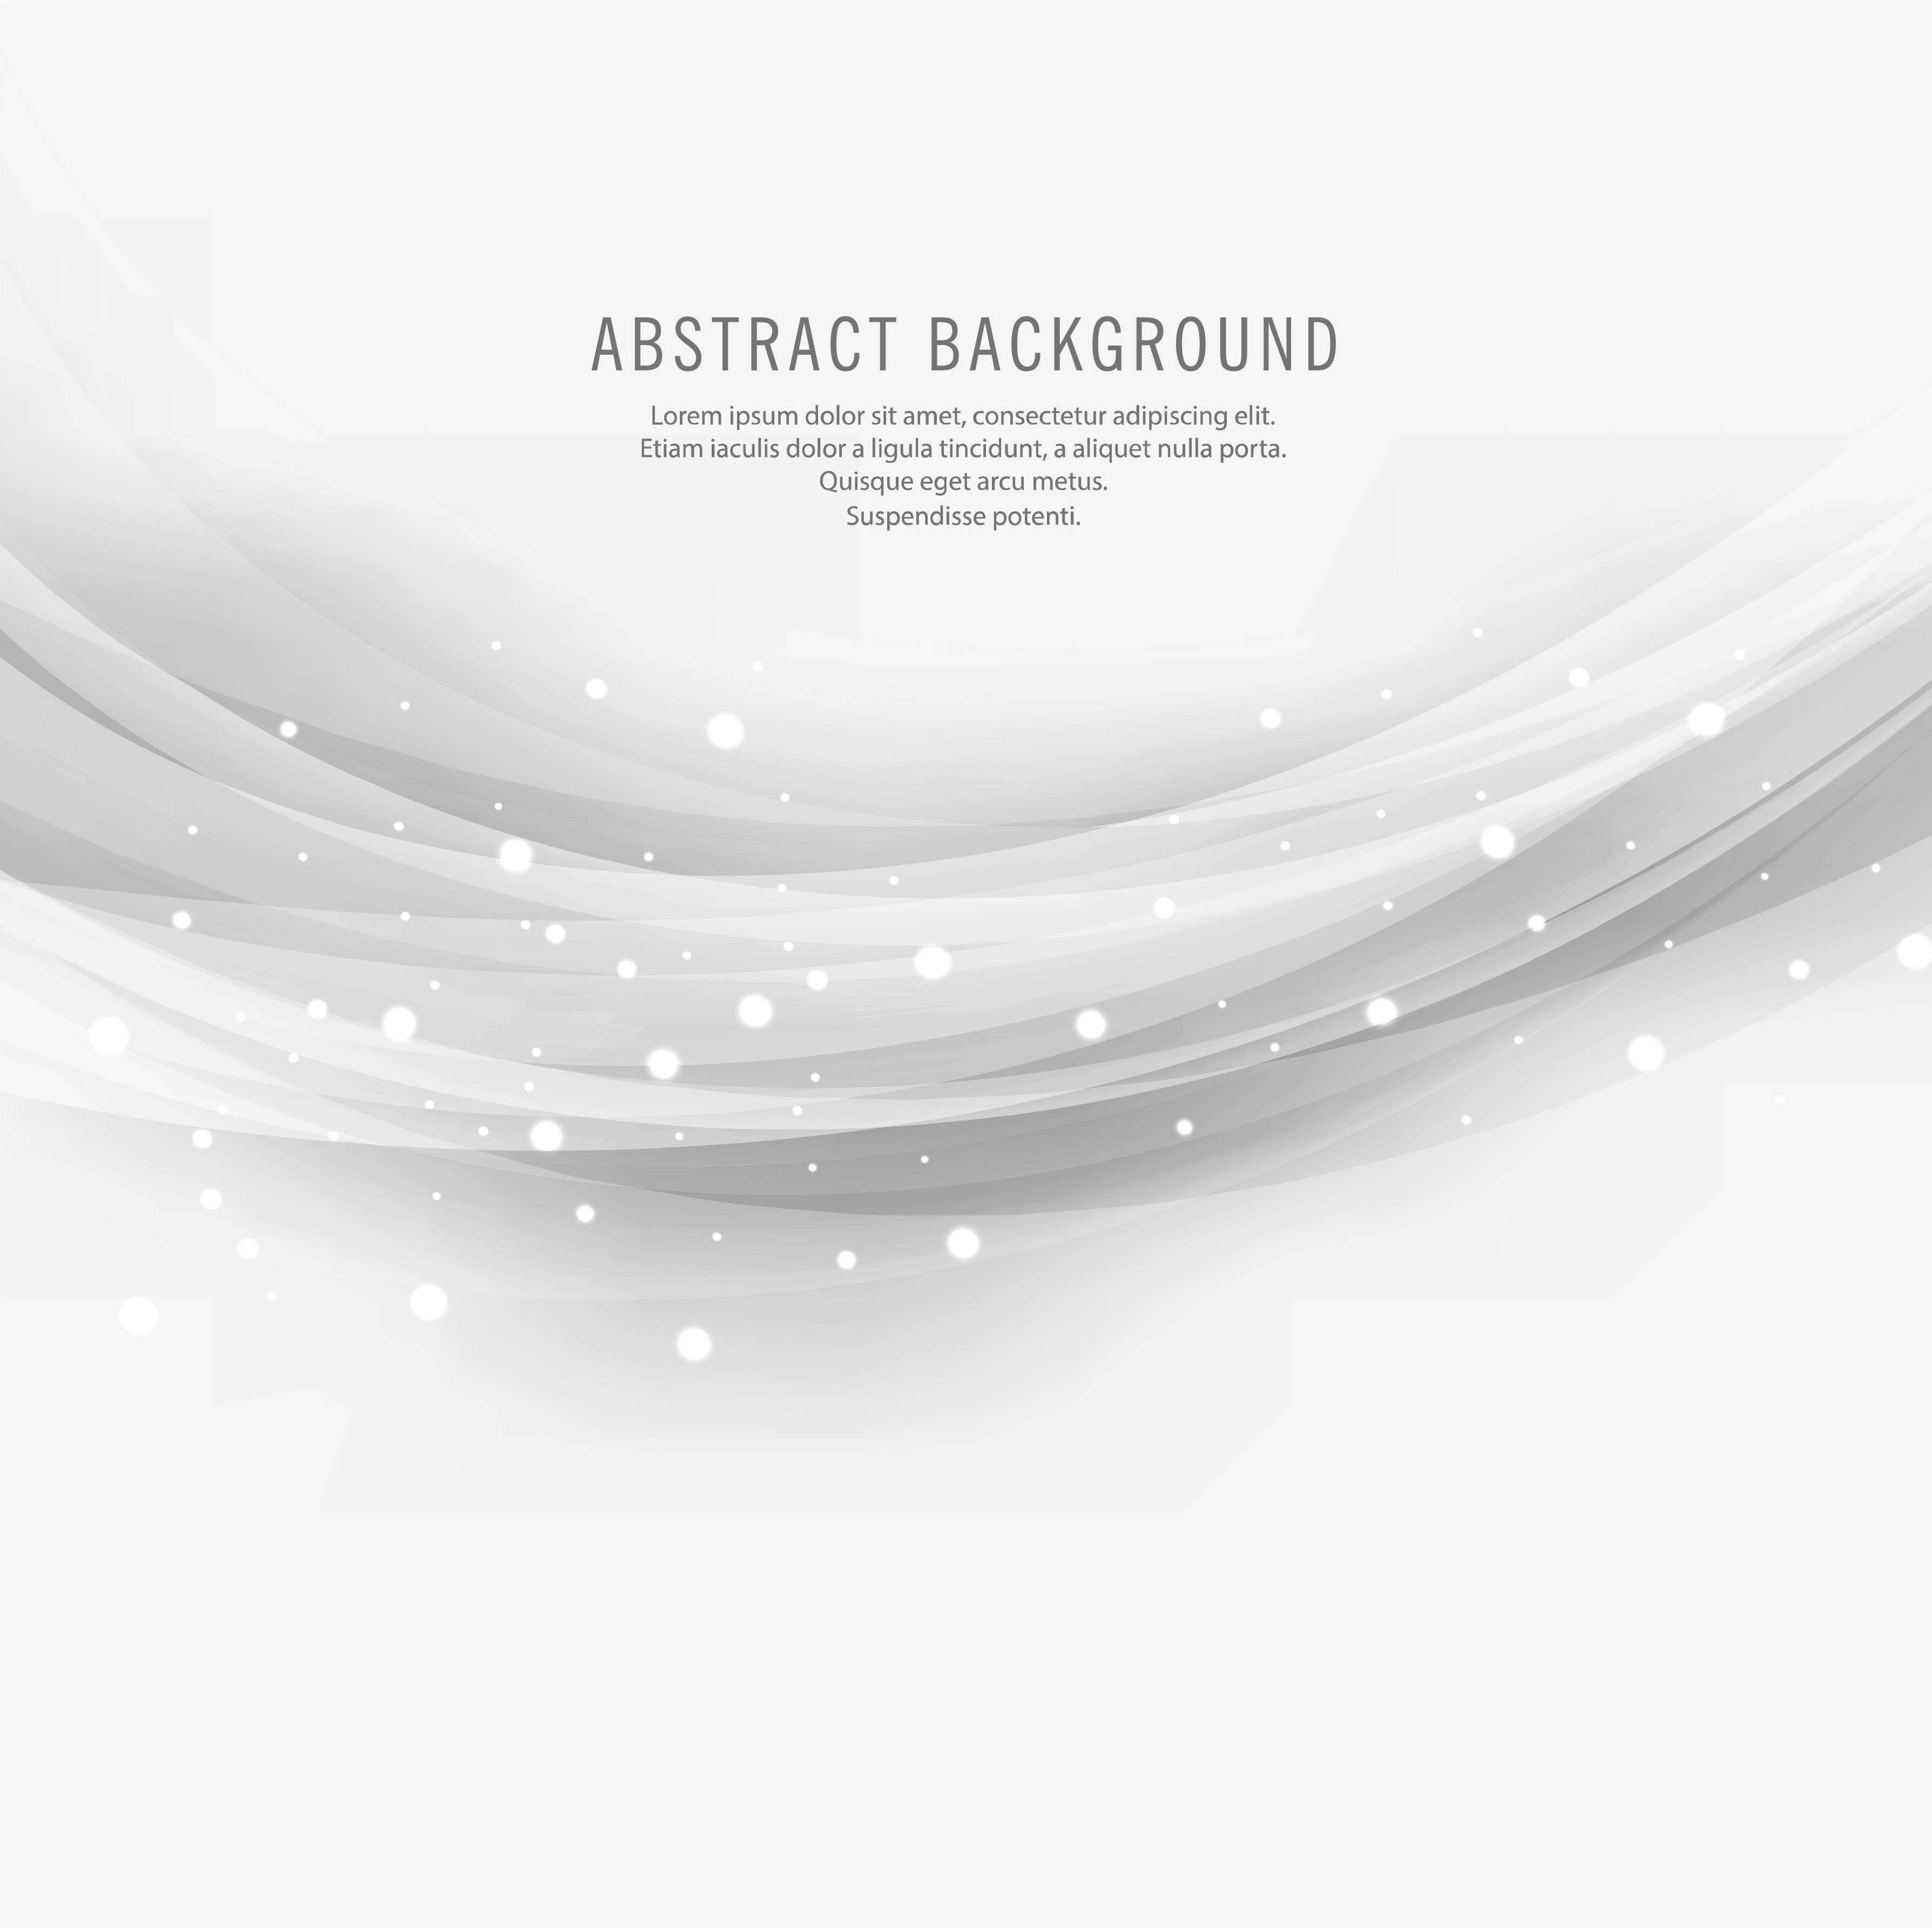 Abstract Gray Wave Design On White Background